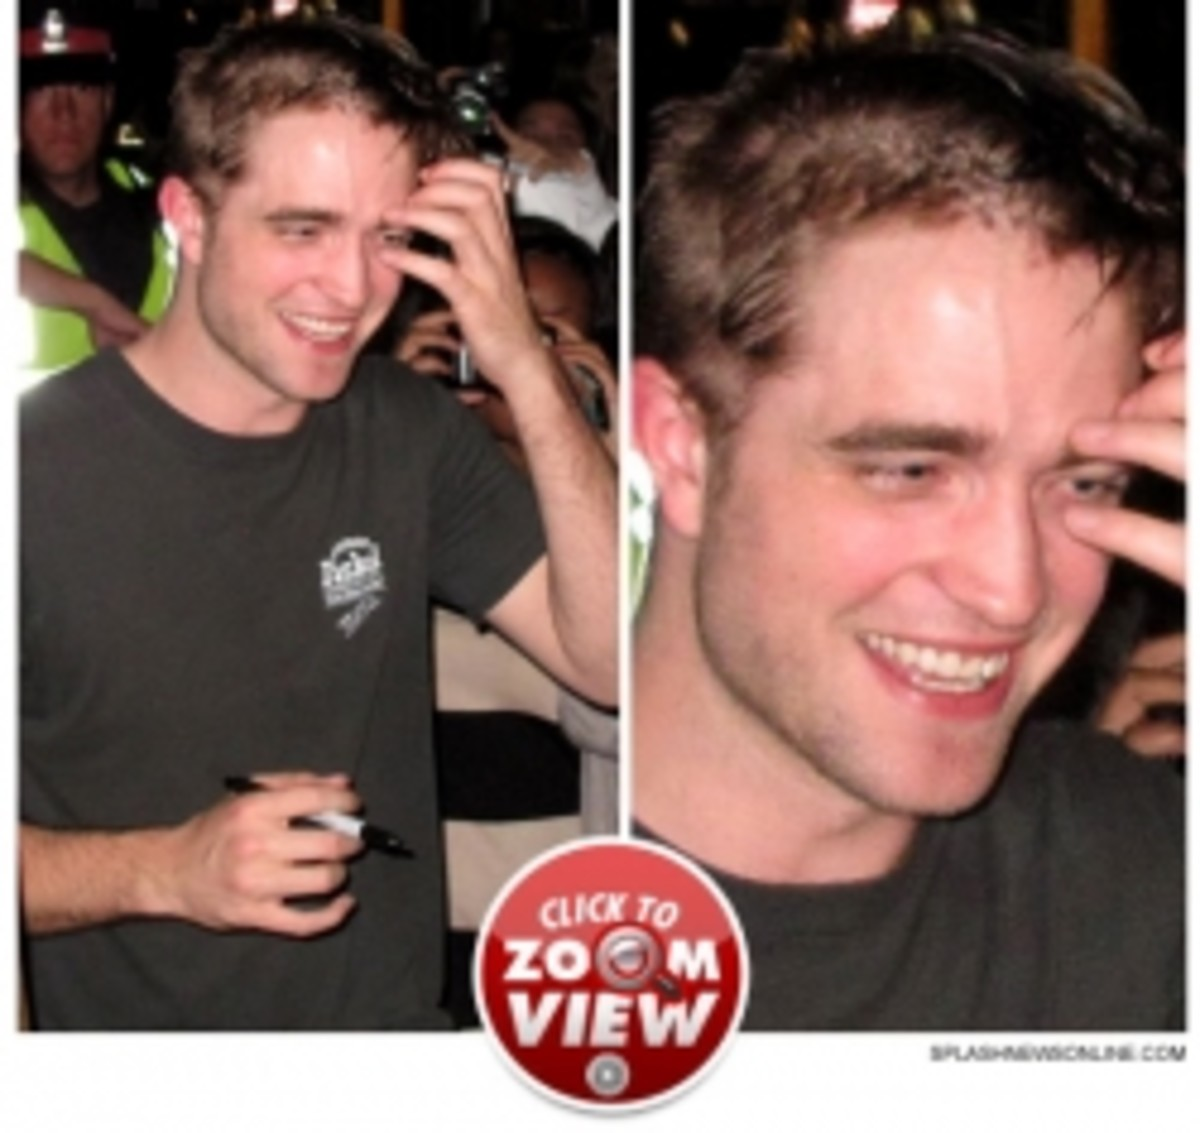 Robert Pattinson's haircut